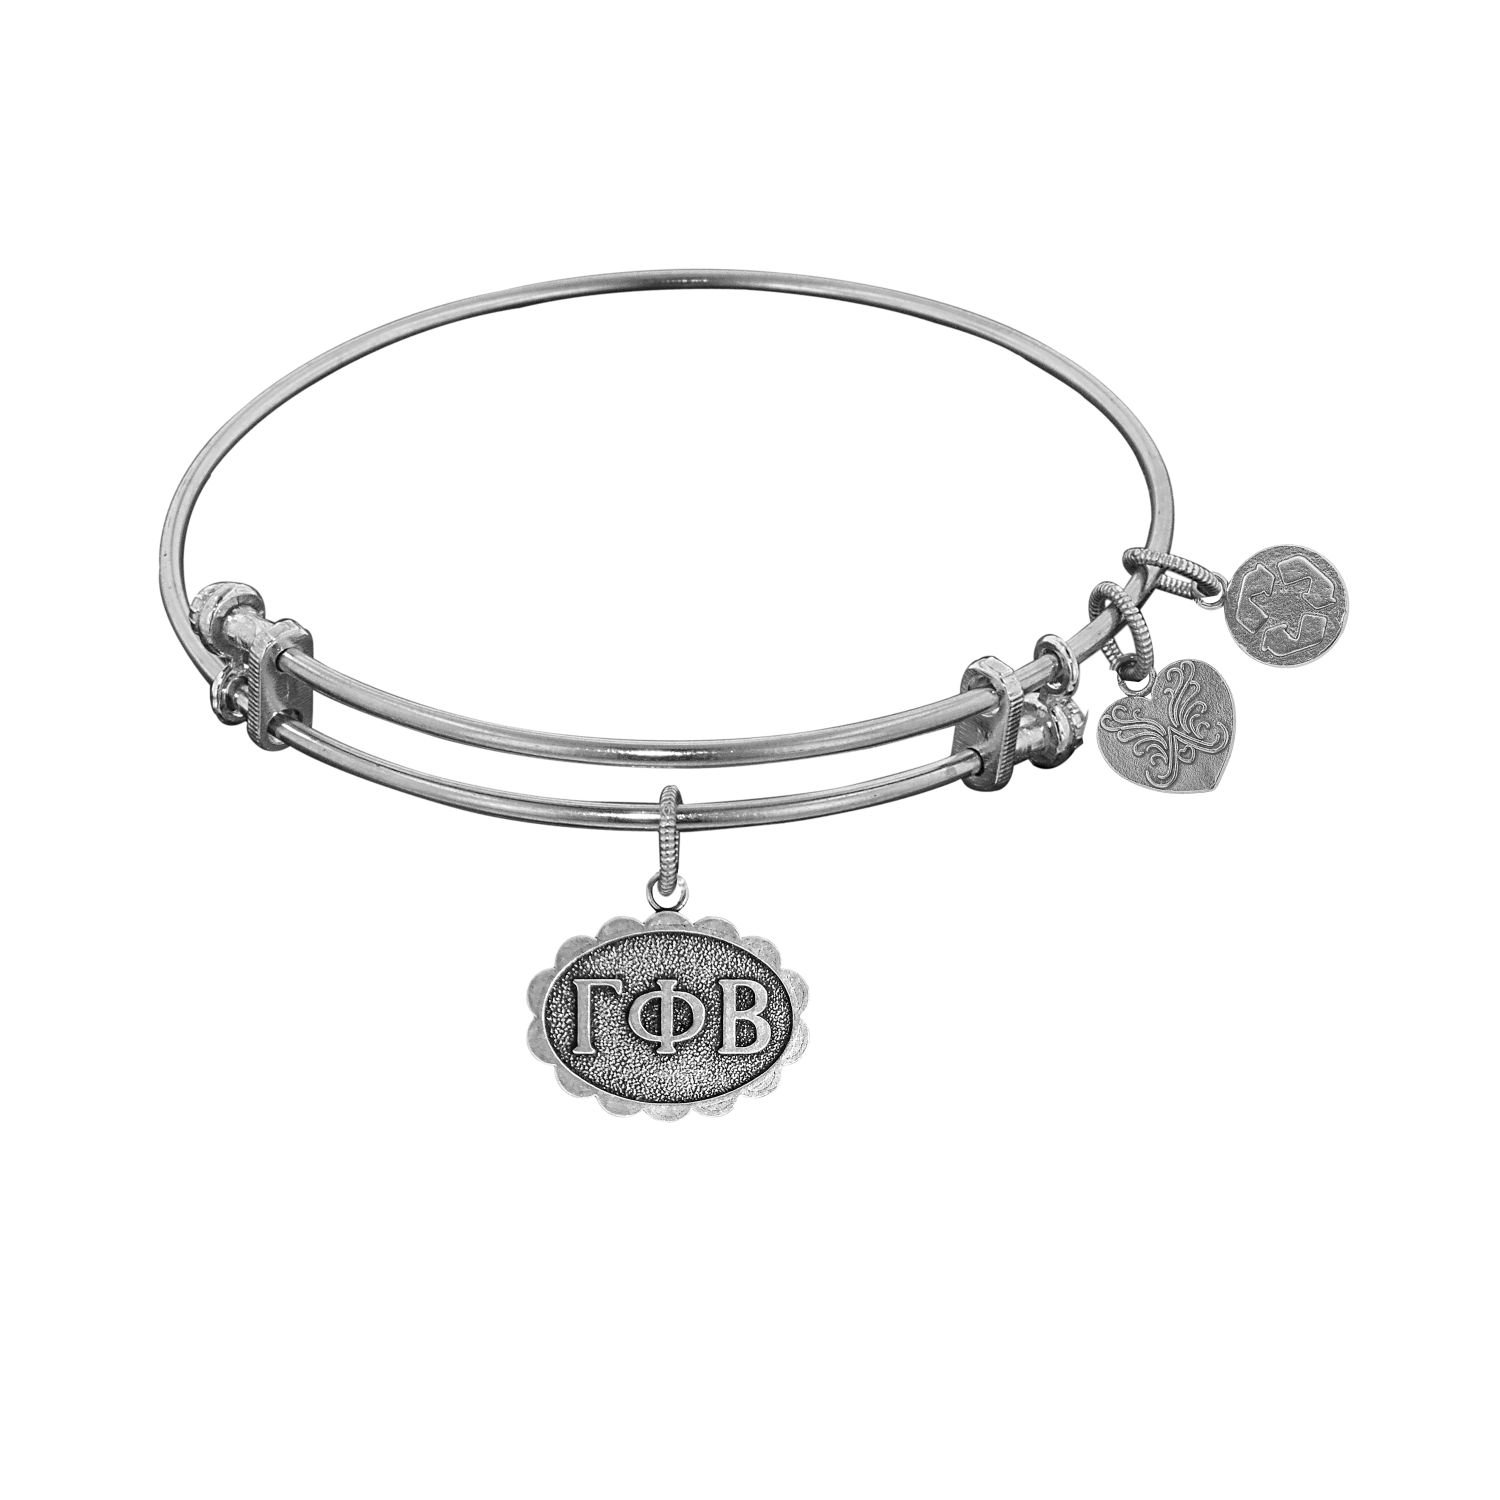 Angelica jewelry Collection Gamma Phi Beta bracelet with white finished brass